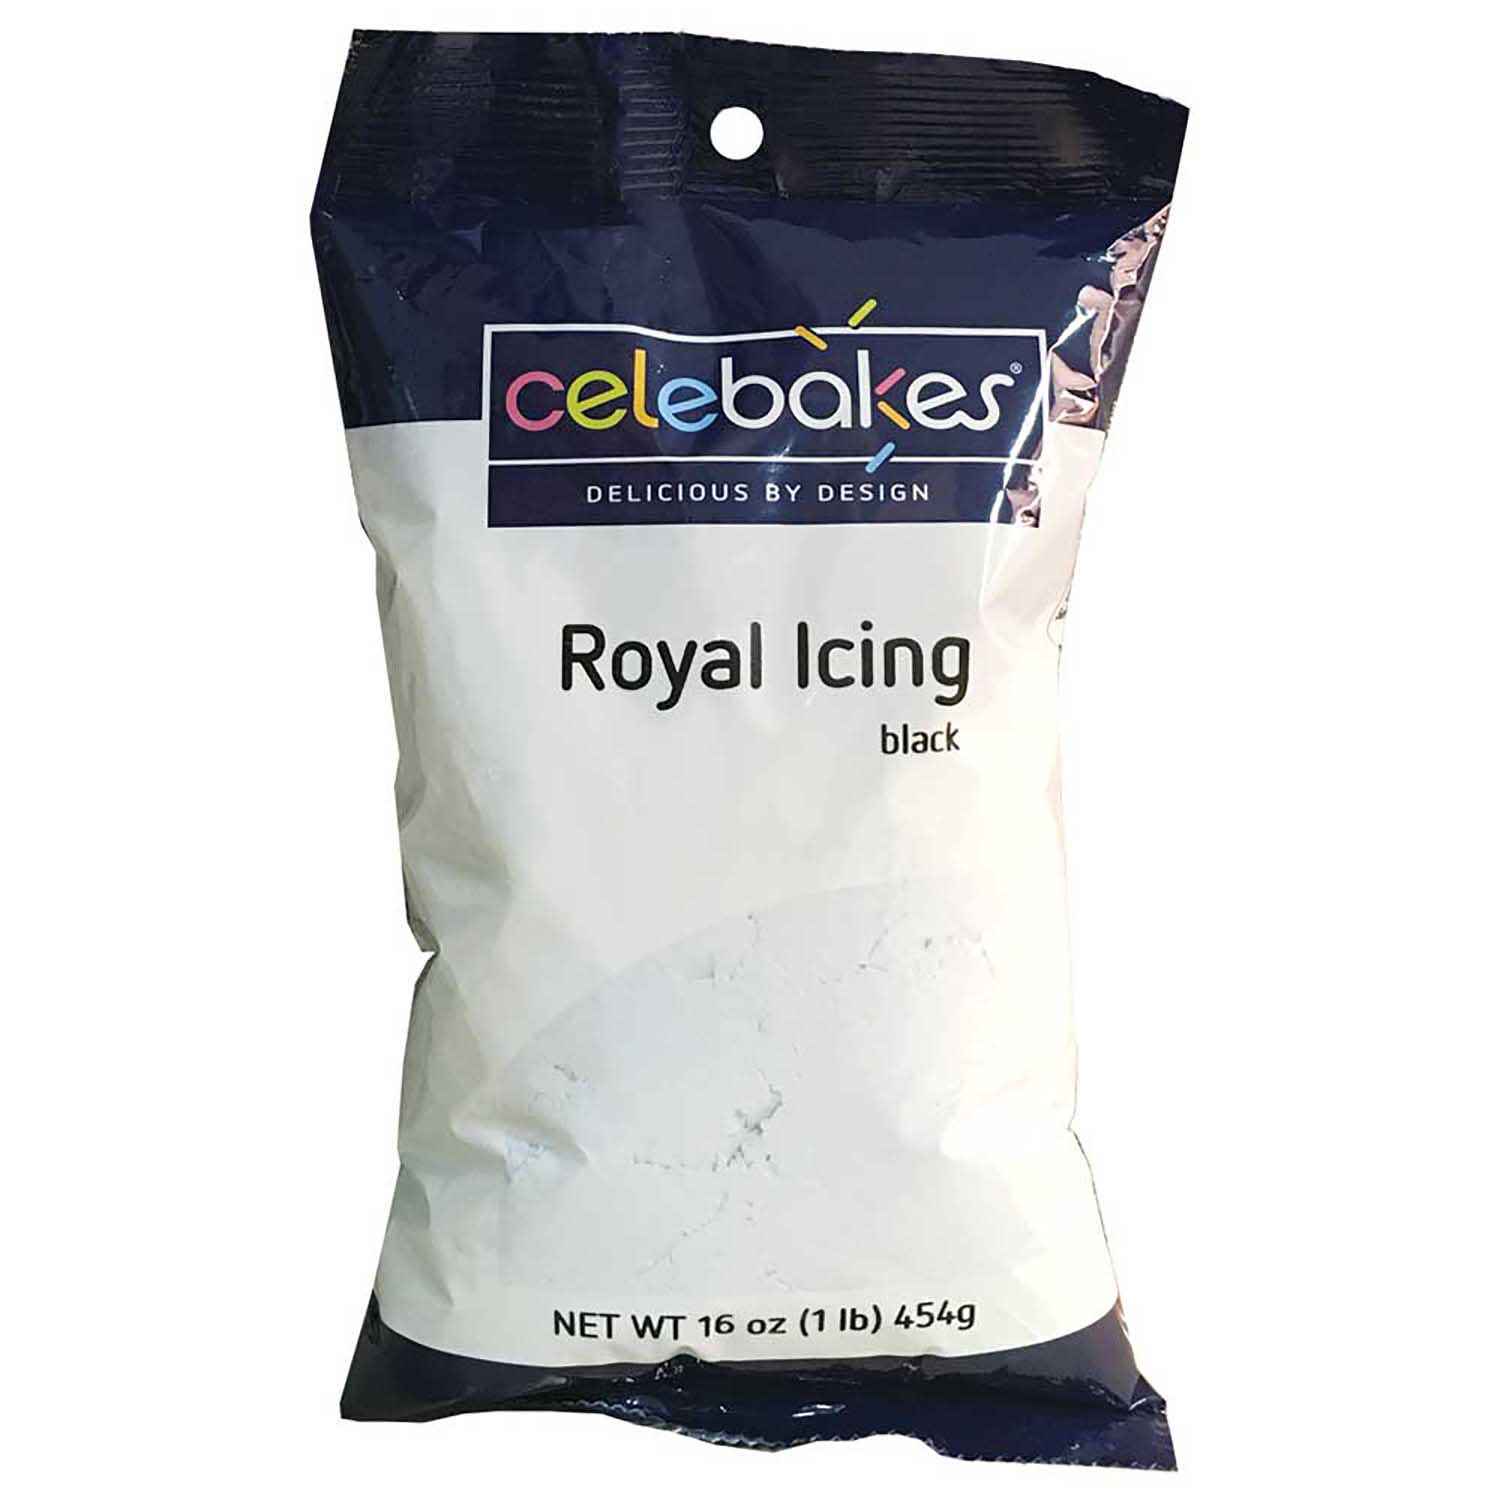 Black Royal Icing Mix